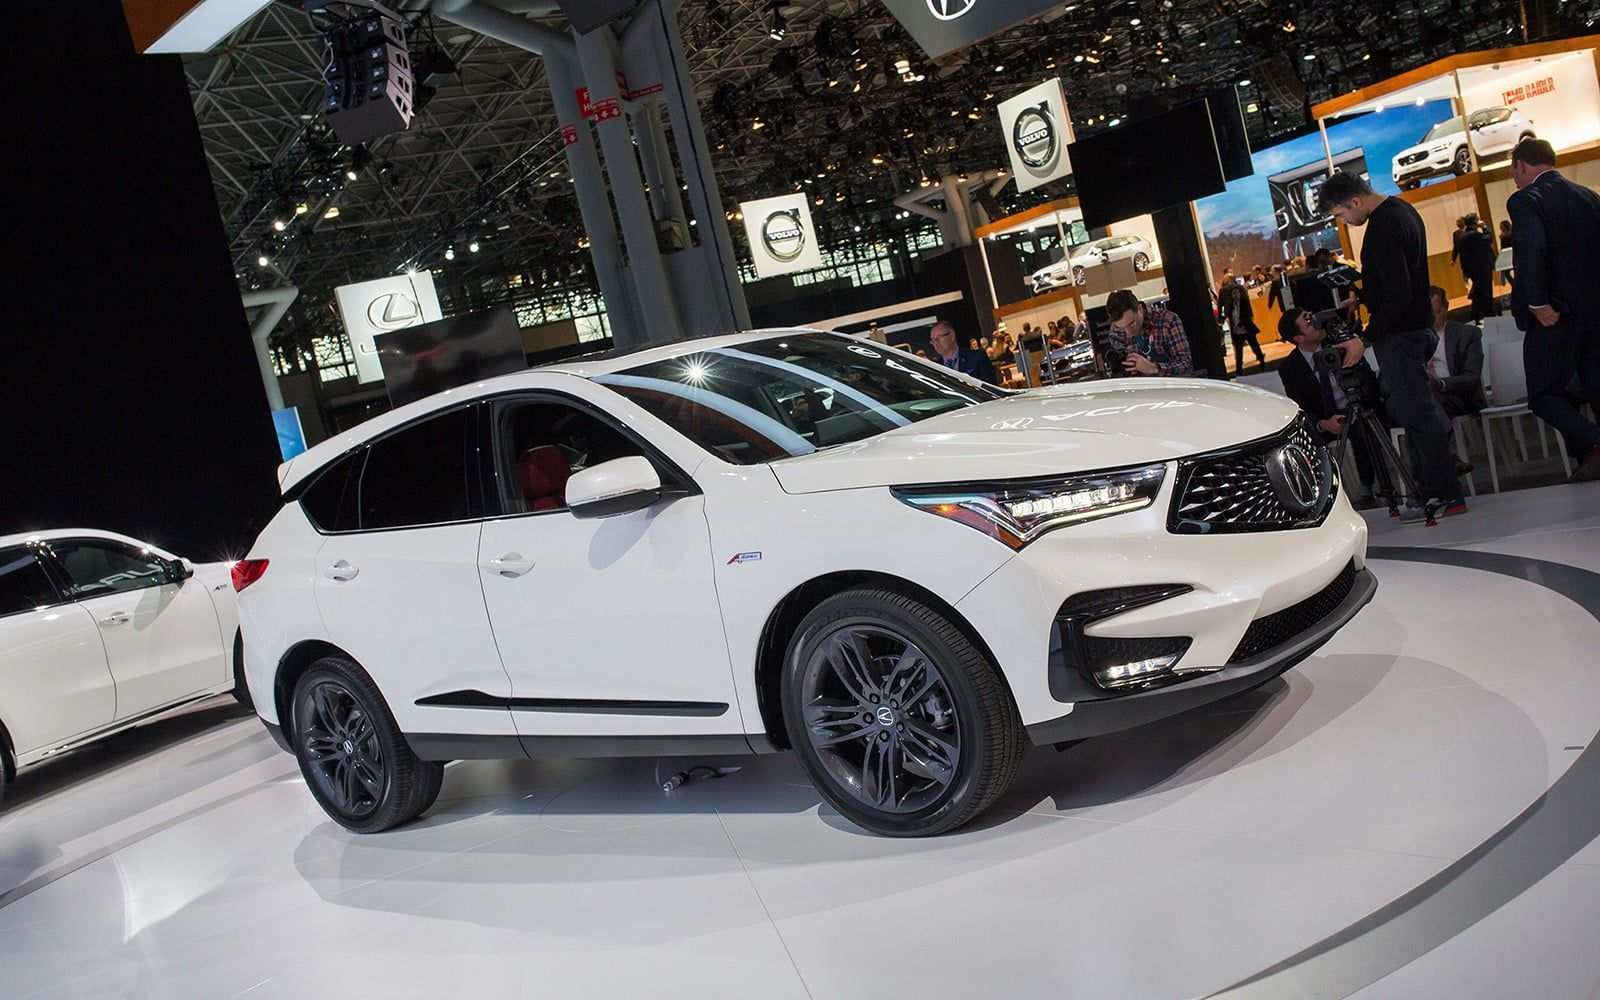 94 Best Review New Acura Rdx 2019 Exterior Colors Spy Shoot Images for New Acura Rdx 2019 Exterior Colors Spy Shoot